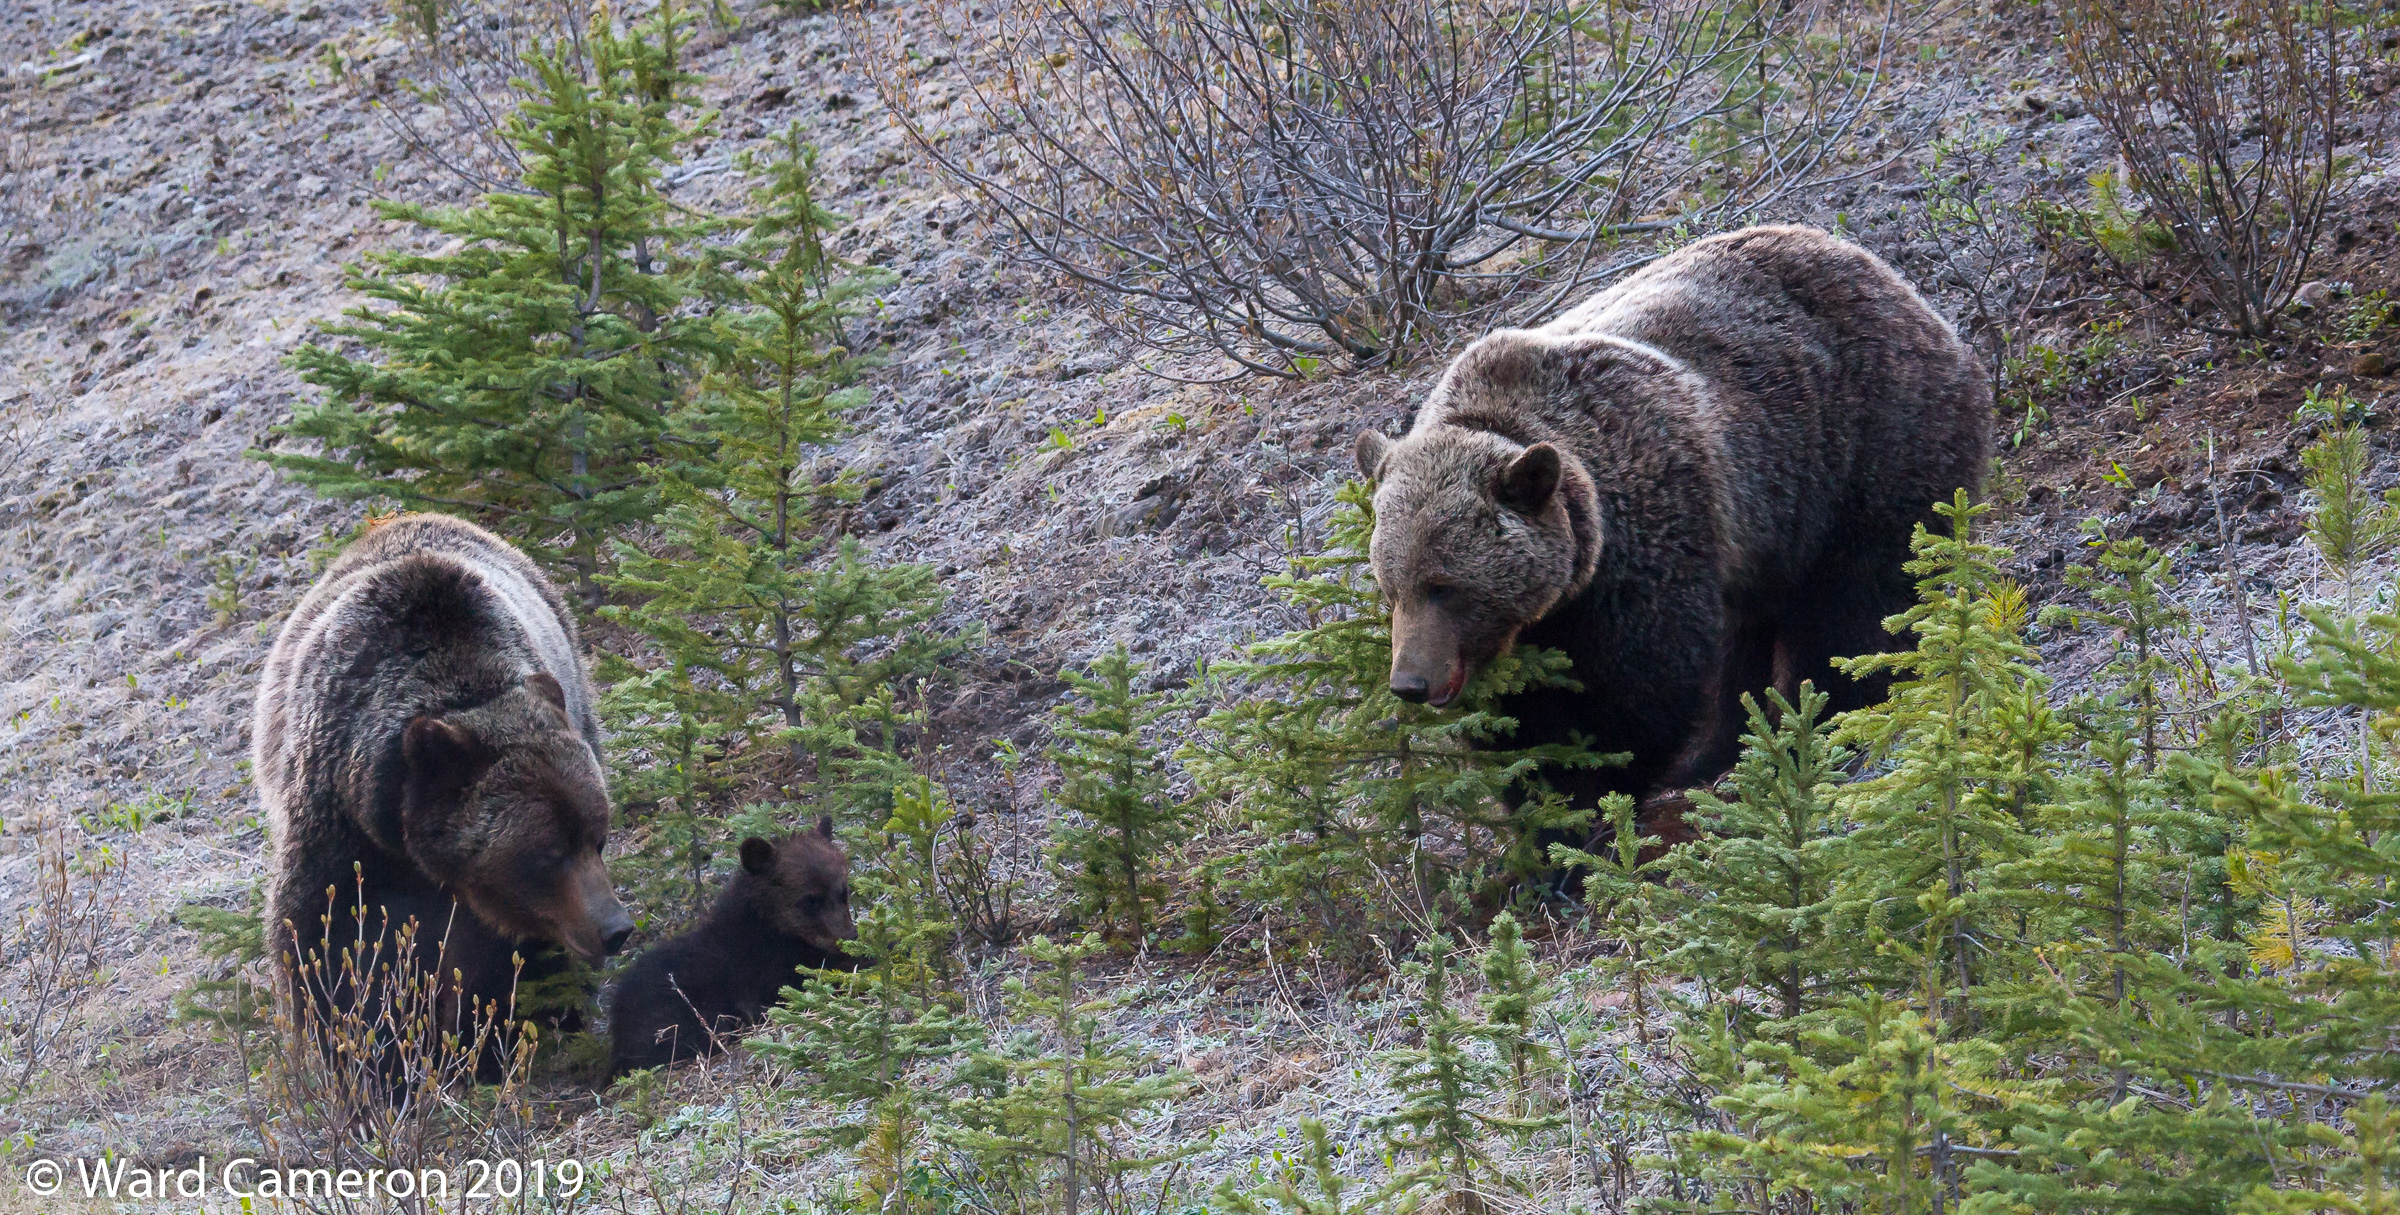 075 Grizzly bears emerge from their winter dens, and Montana's